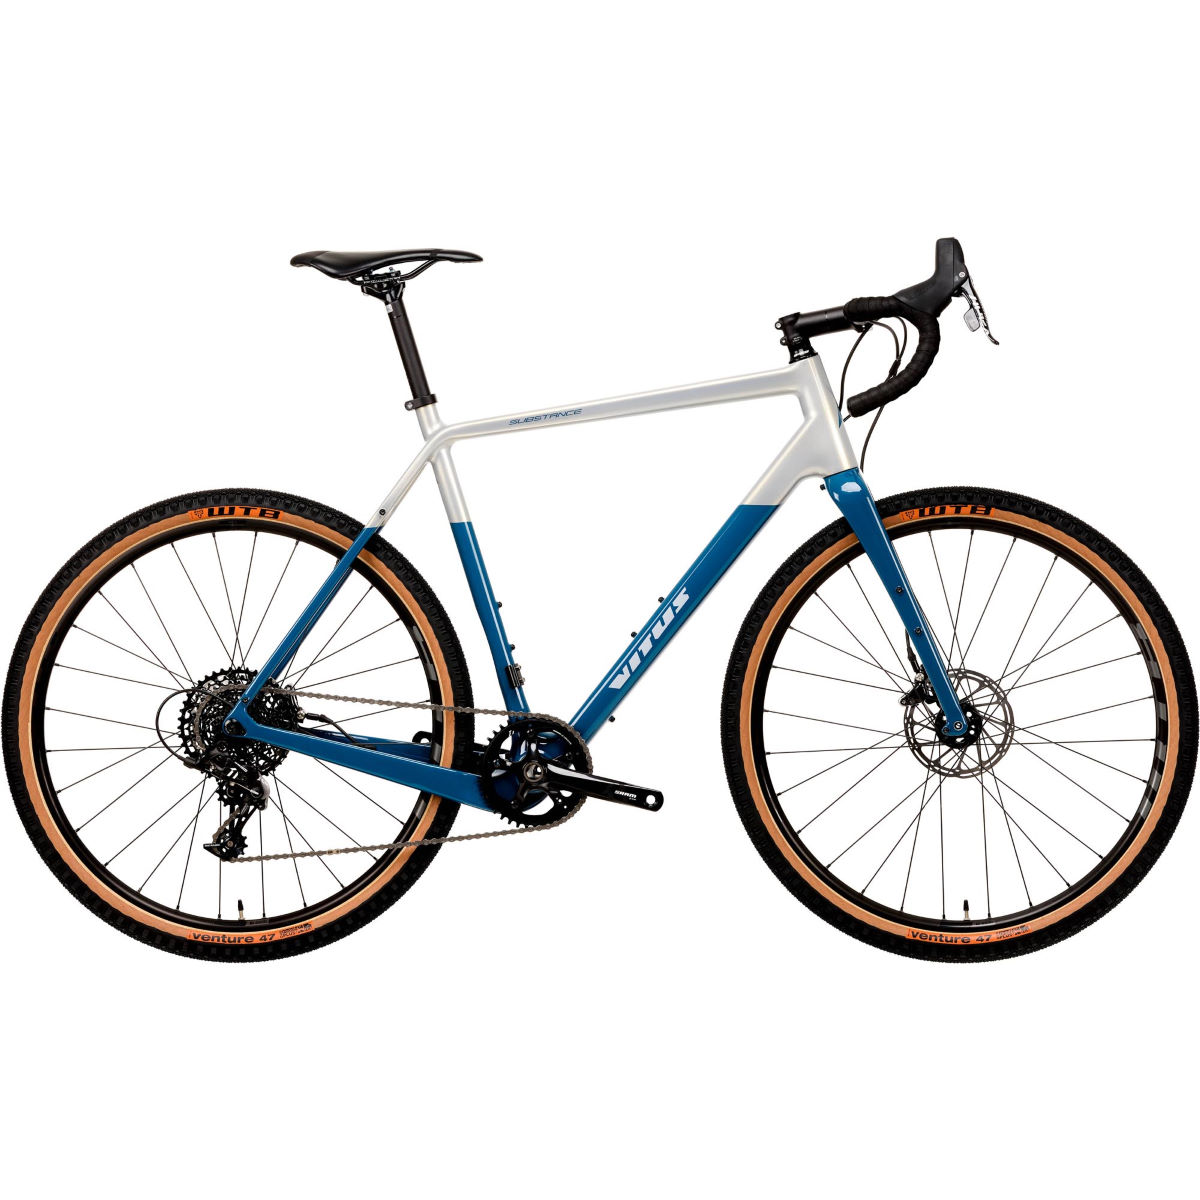 Vitus Vitus Substance CRS-1 Adventure Road Bike (2020)   Adventure Bikes